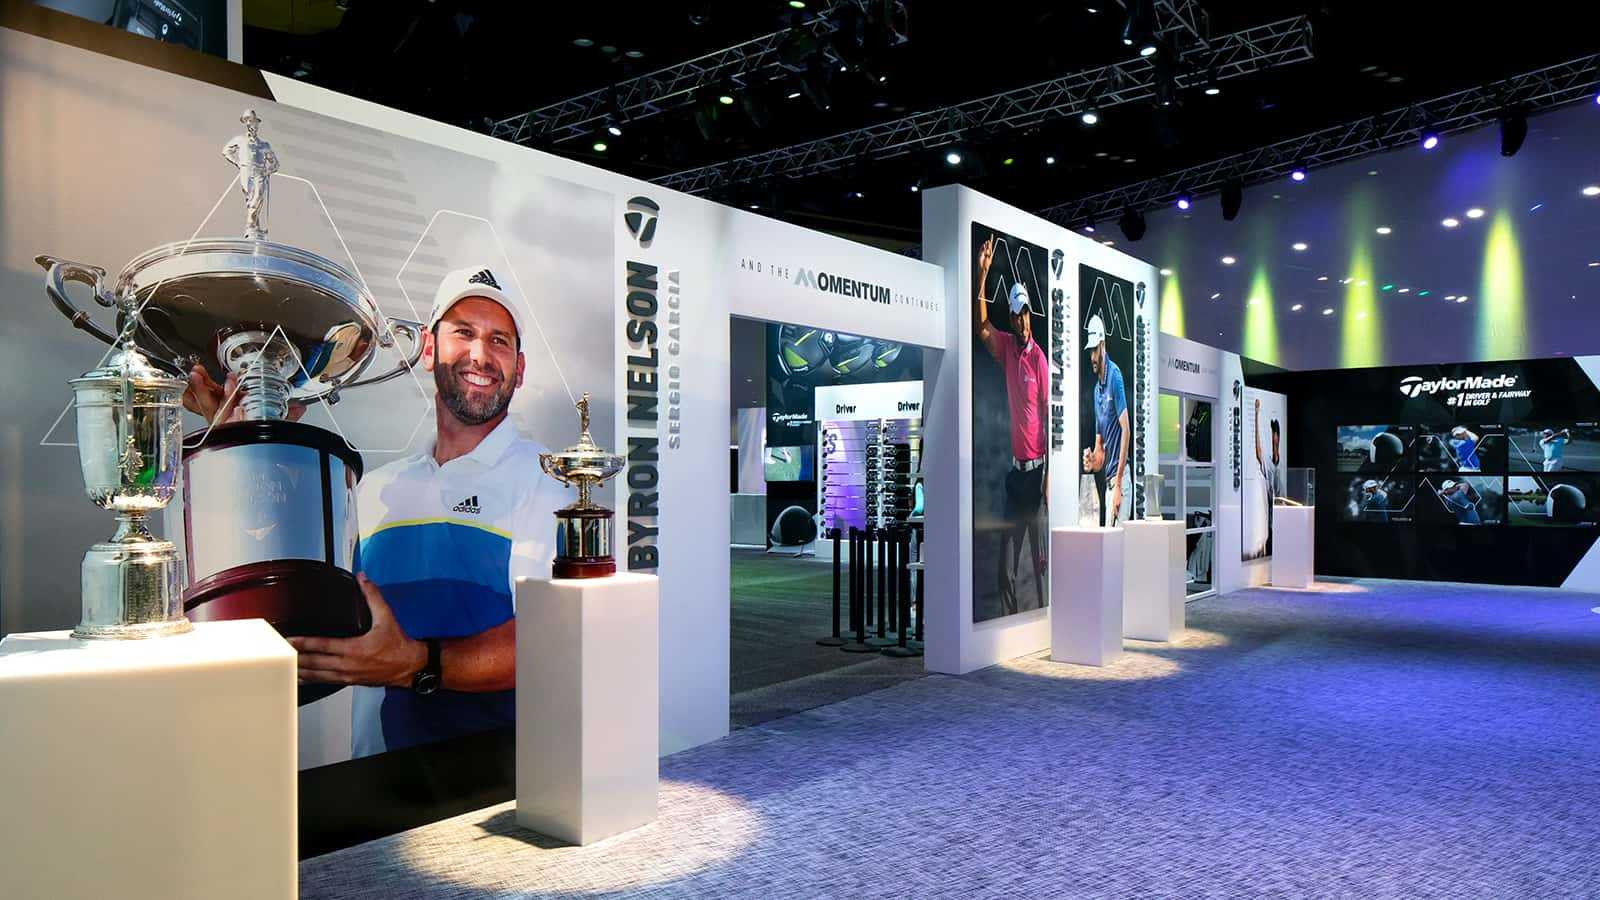 Sergio Garcia display at the TaylorMade PGA Merchandise Show 2017 experience.